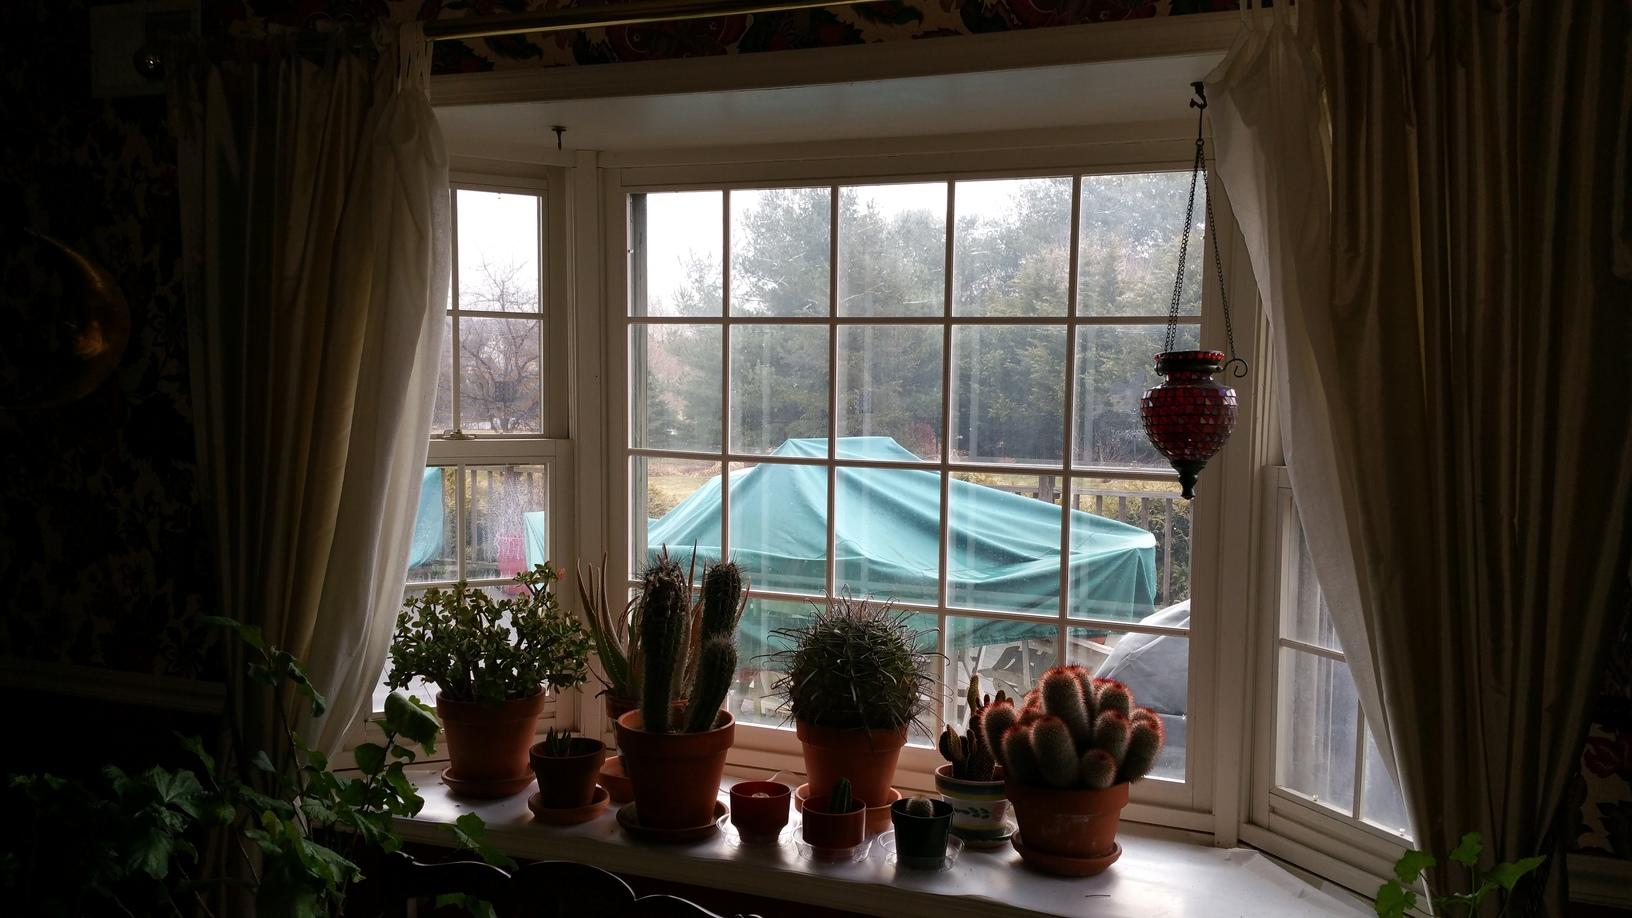 Wood Windows that Need Replacement